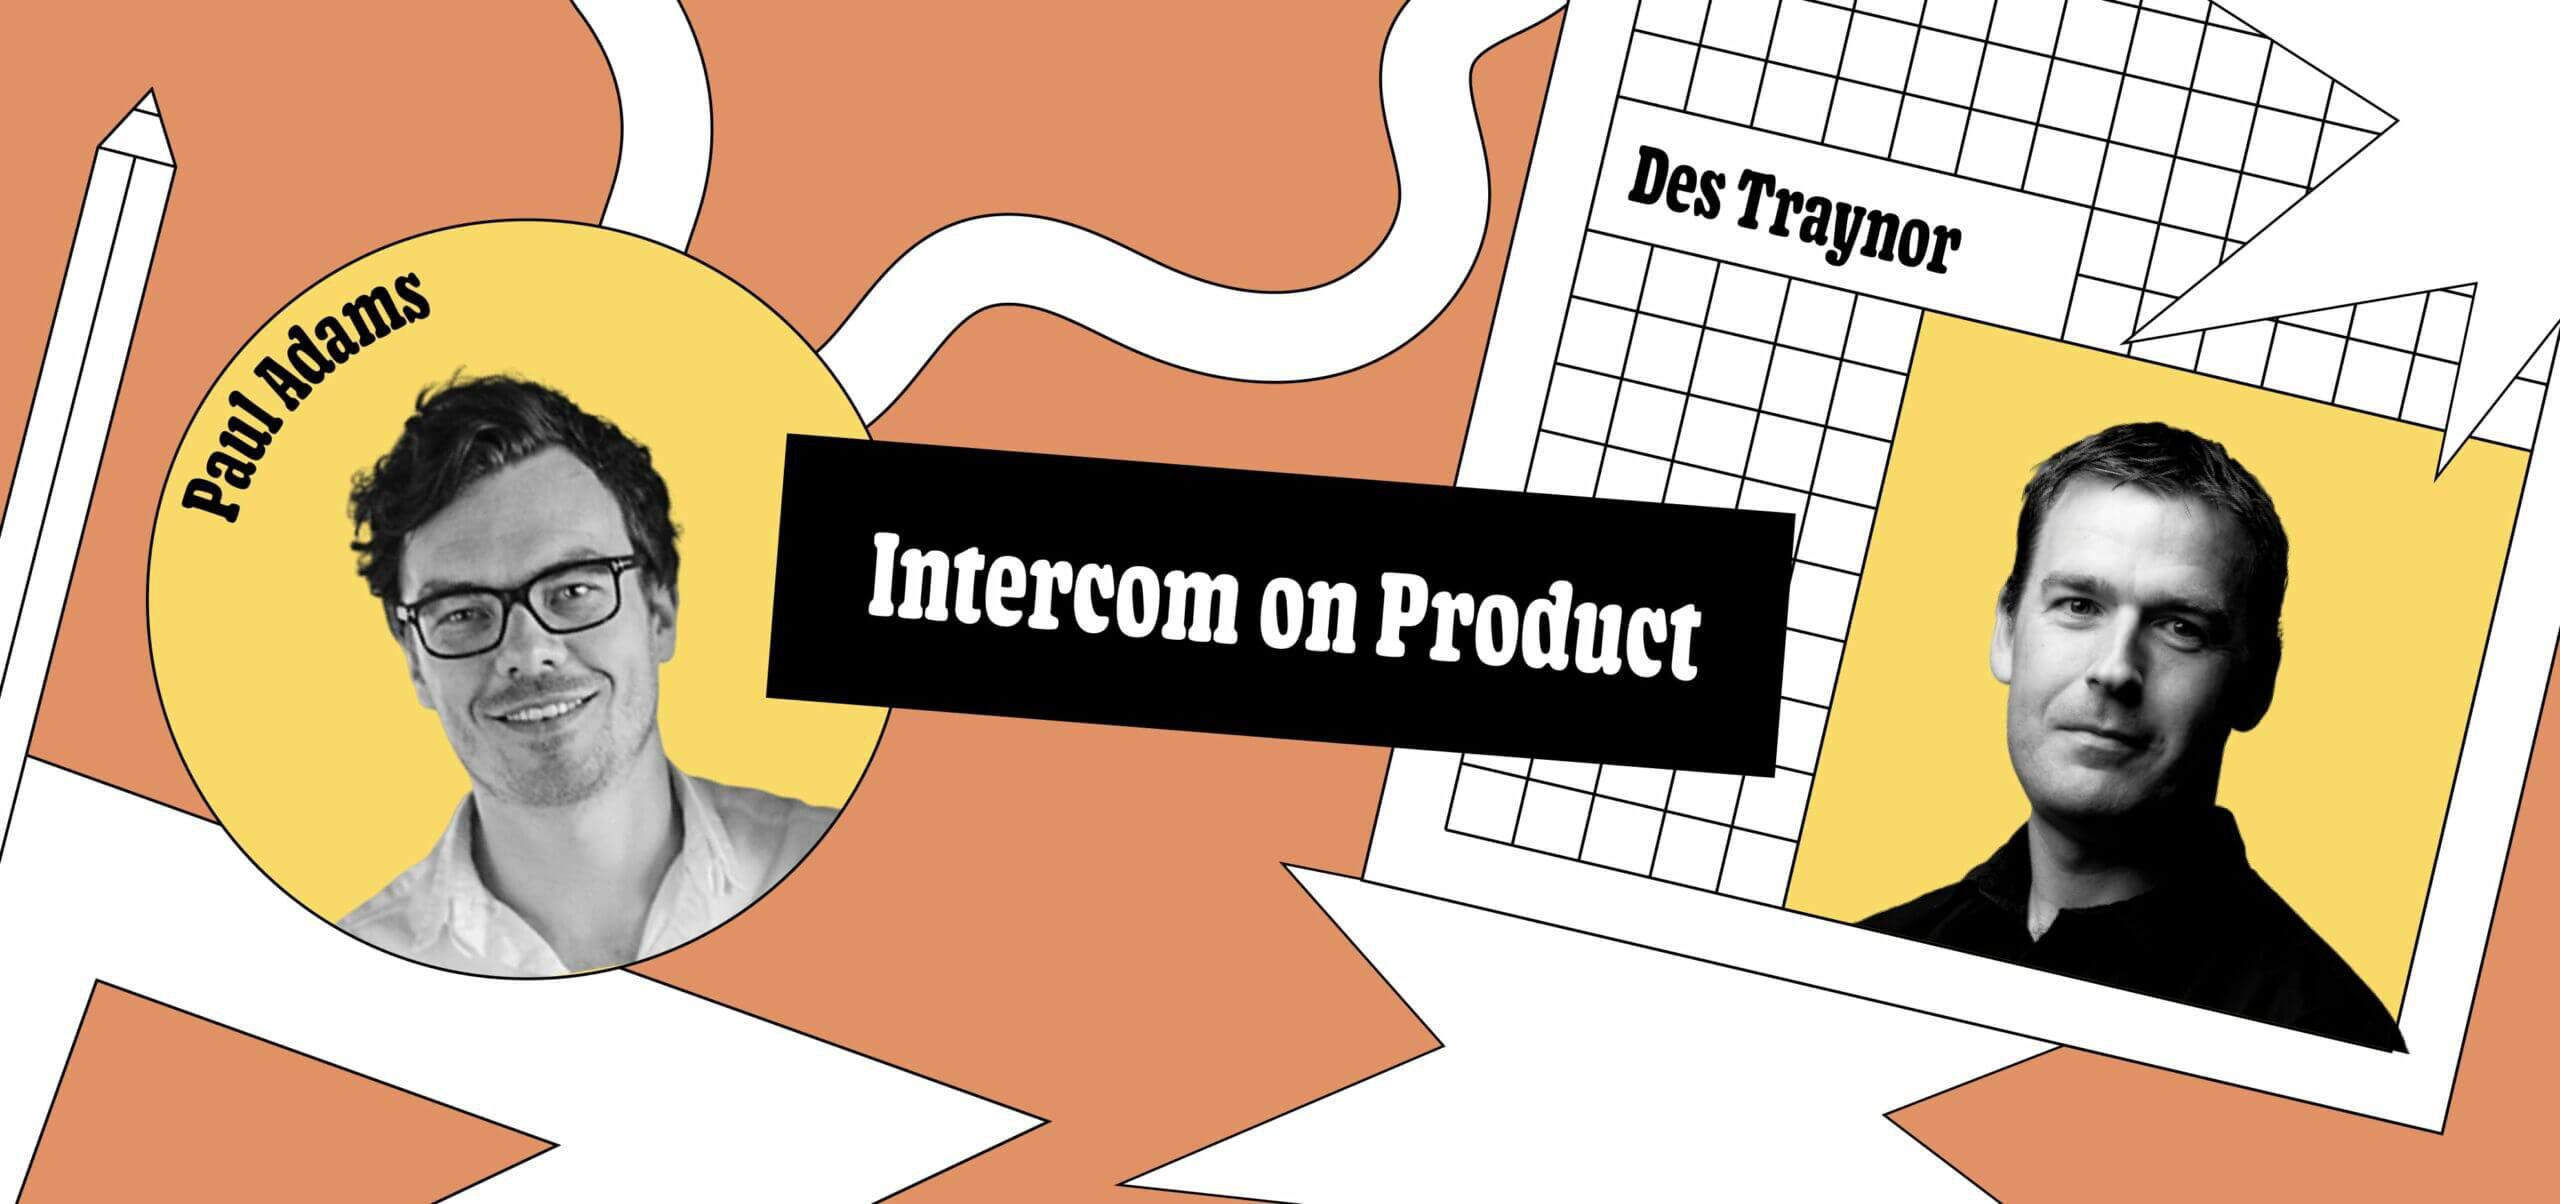 Intercom on Product: Accelerating your strategy after COVID-19